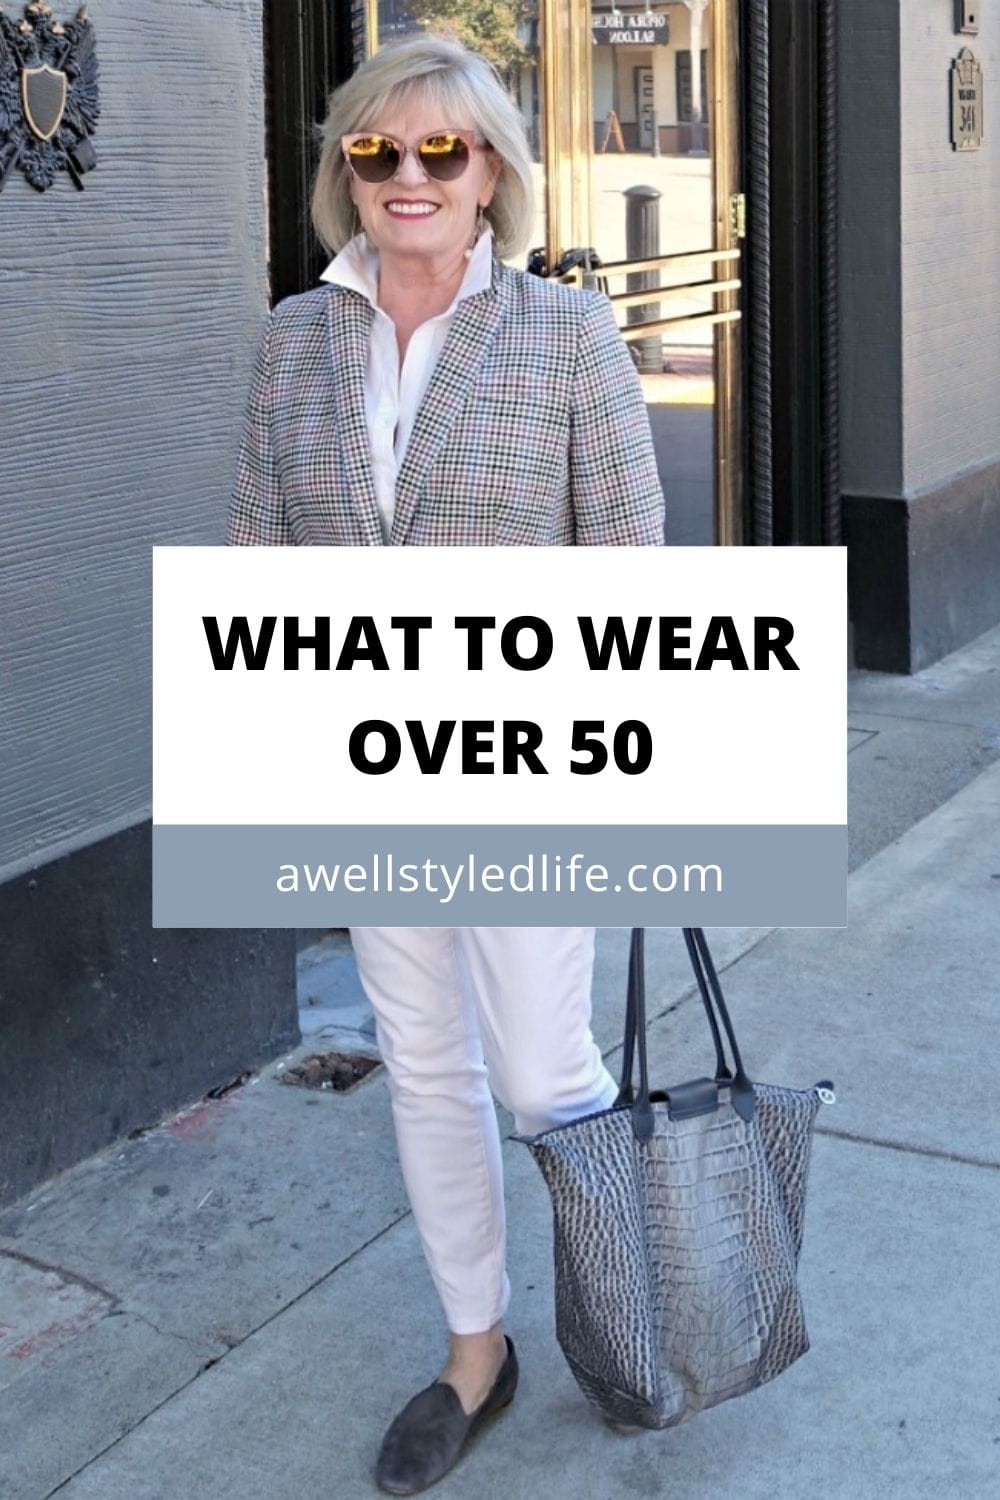 What To Wear Over 50